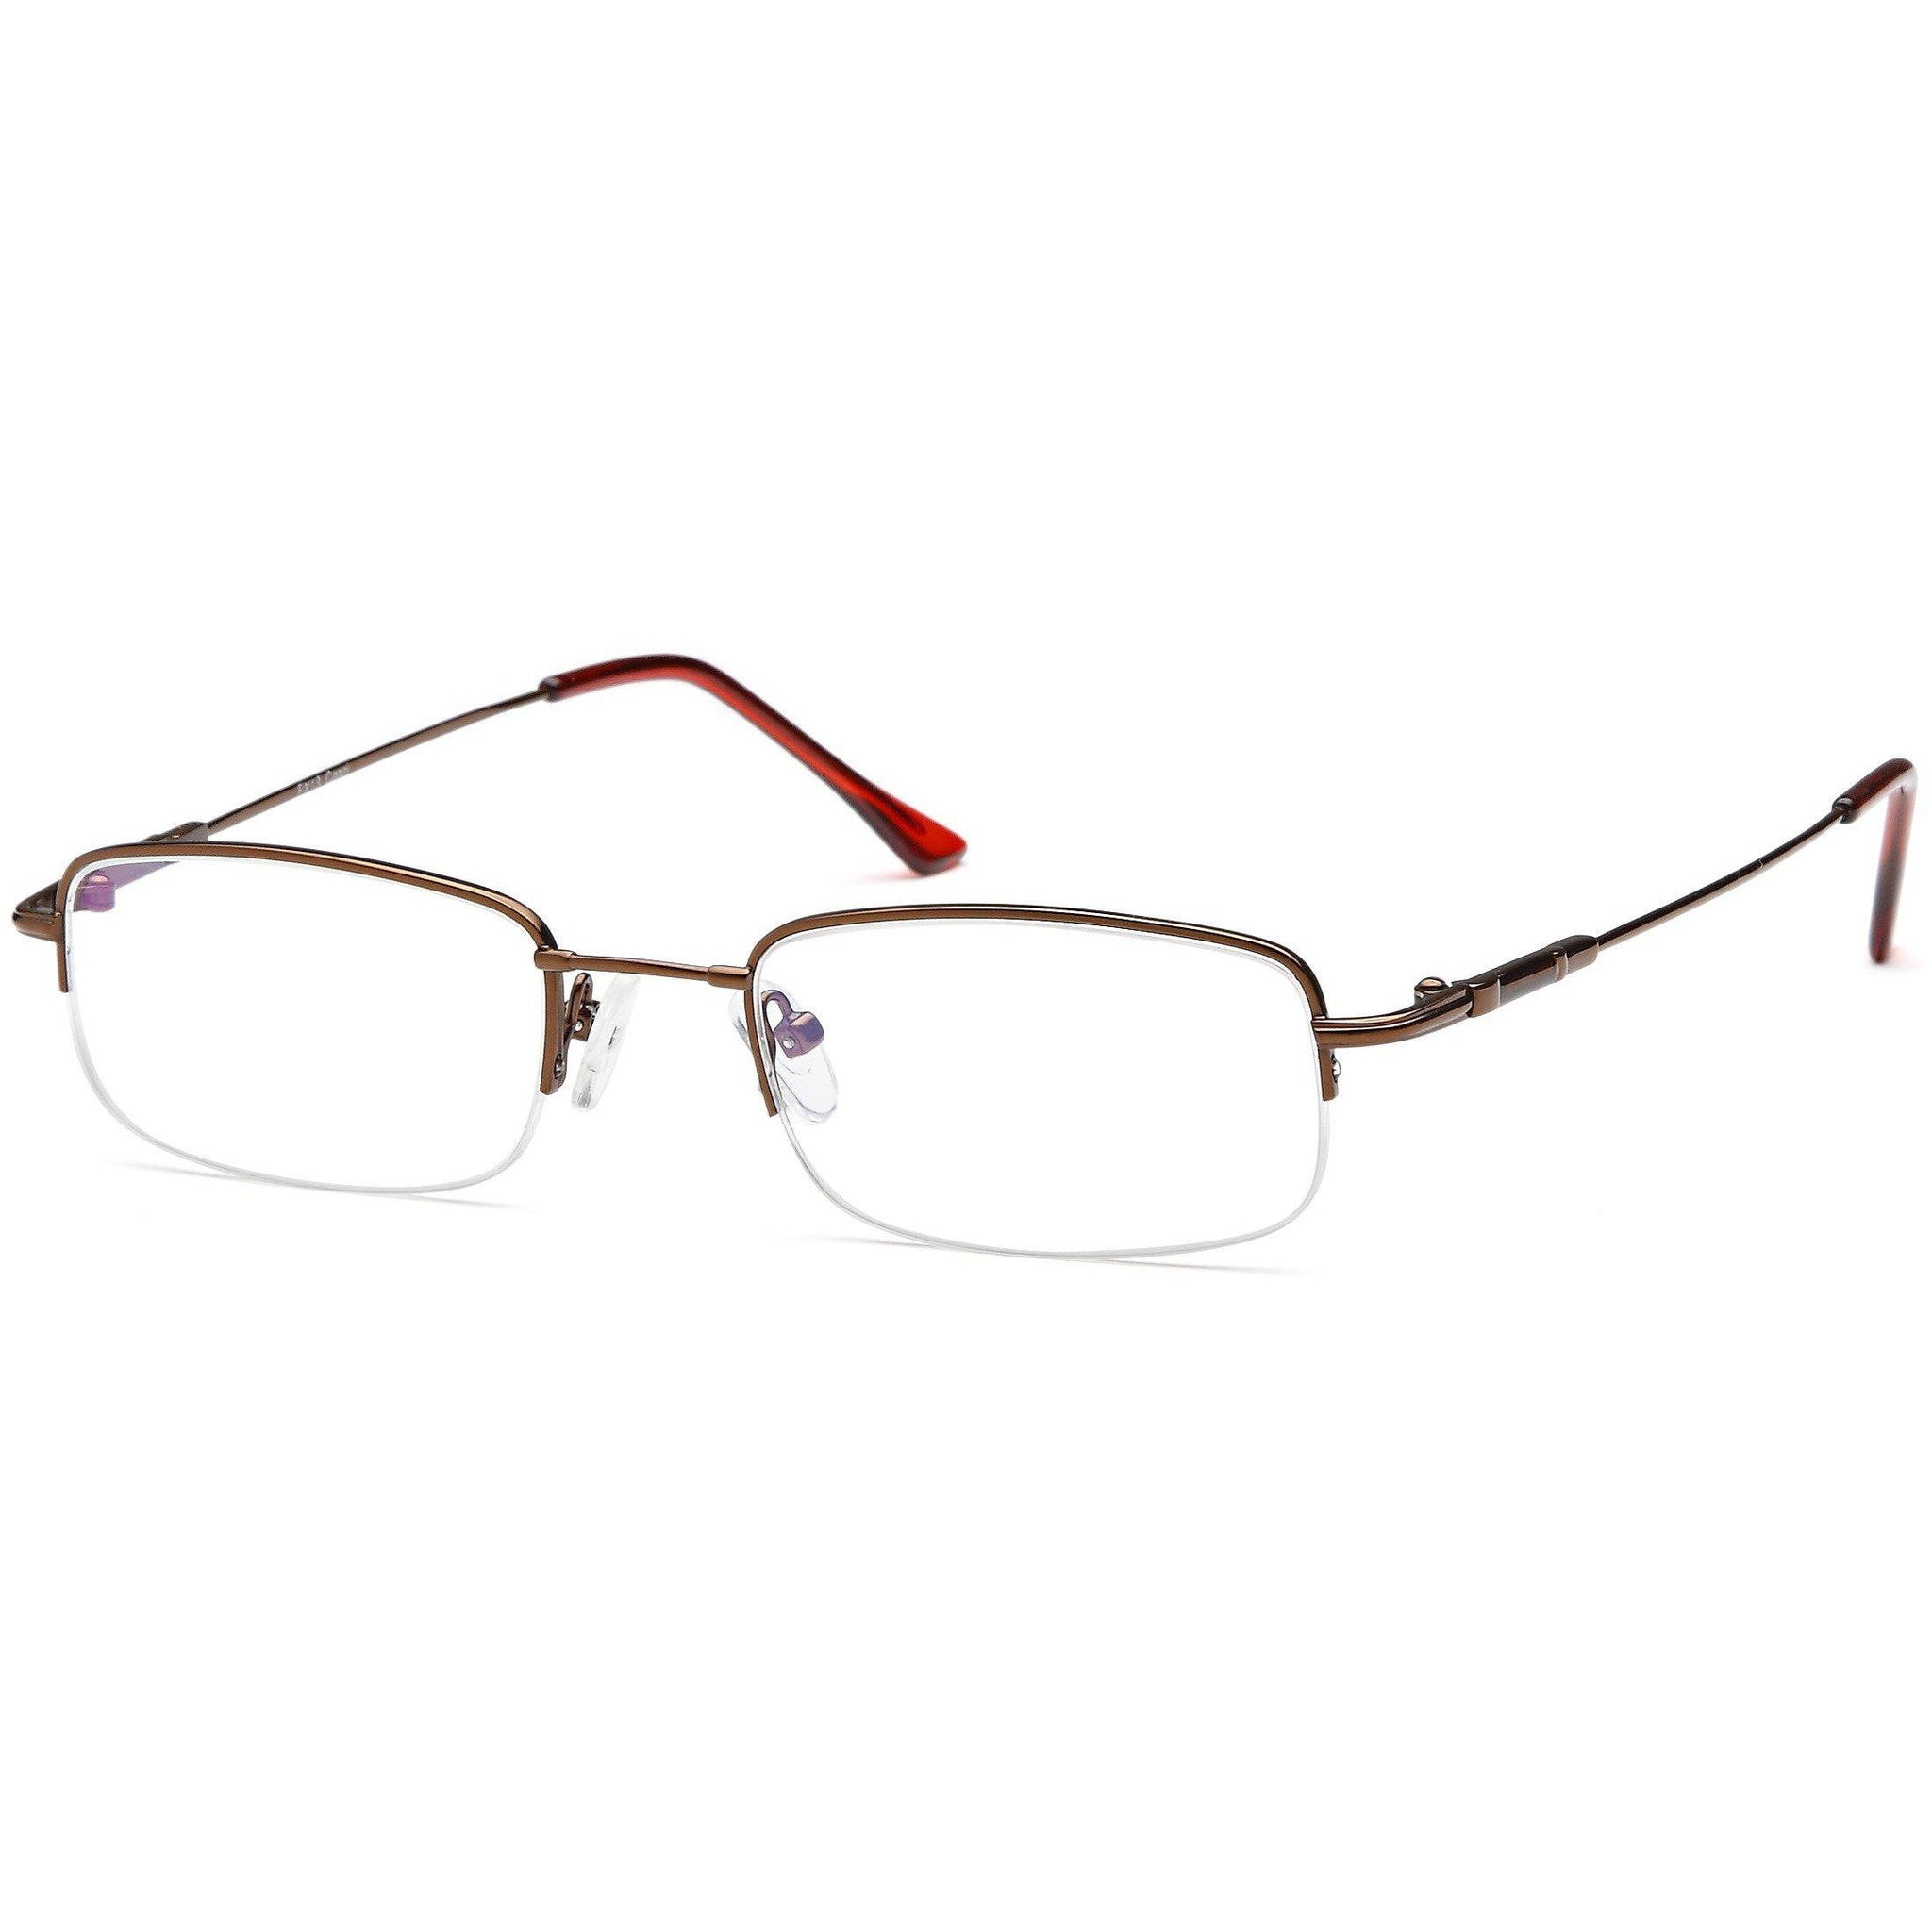 Titanium Prescription Glasses FX 13 Eyeglasses Frame